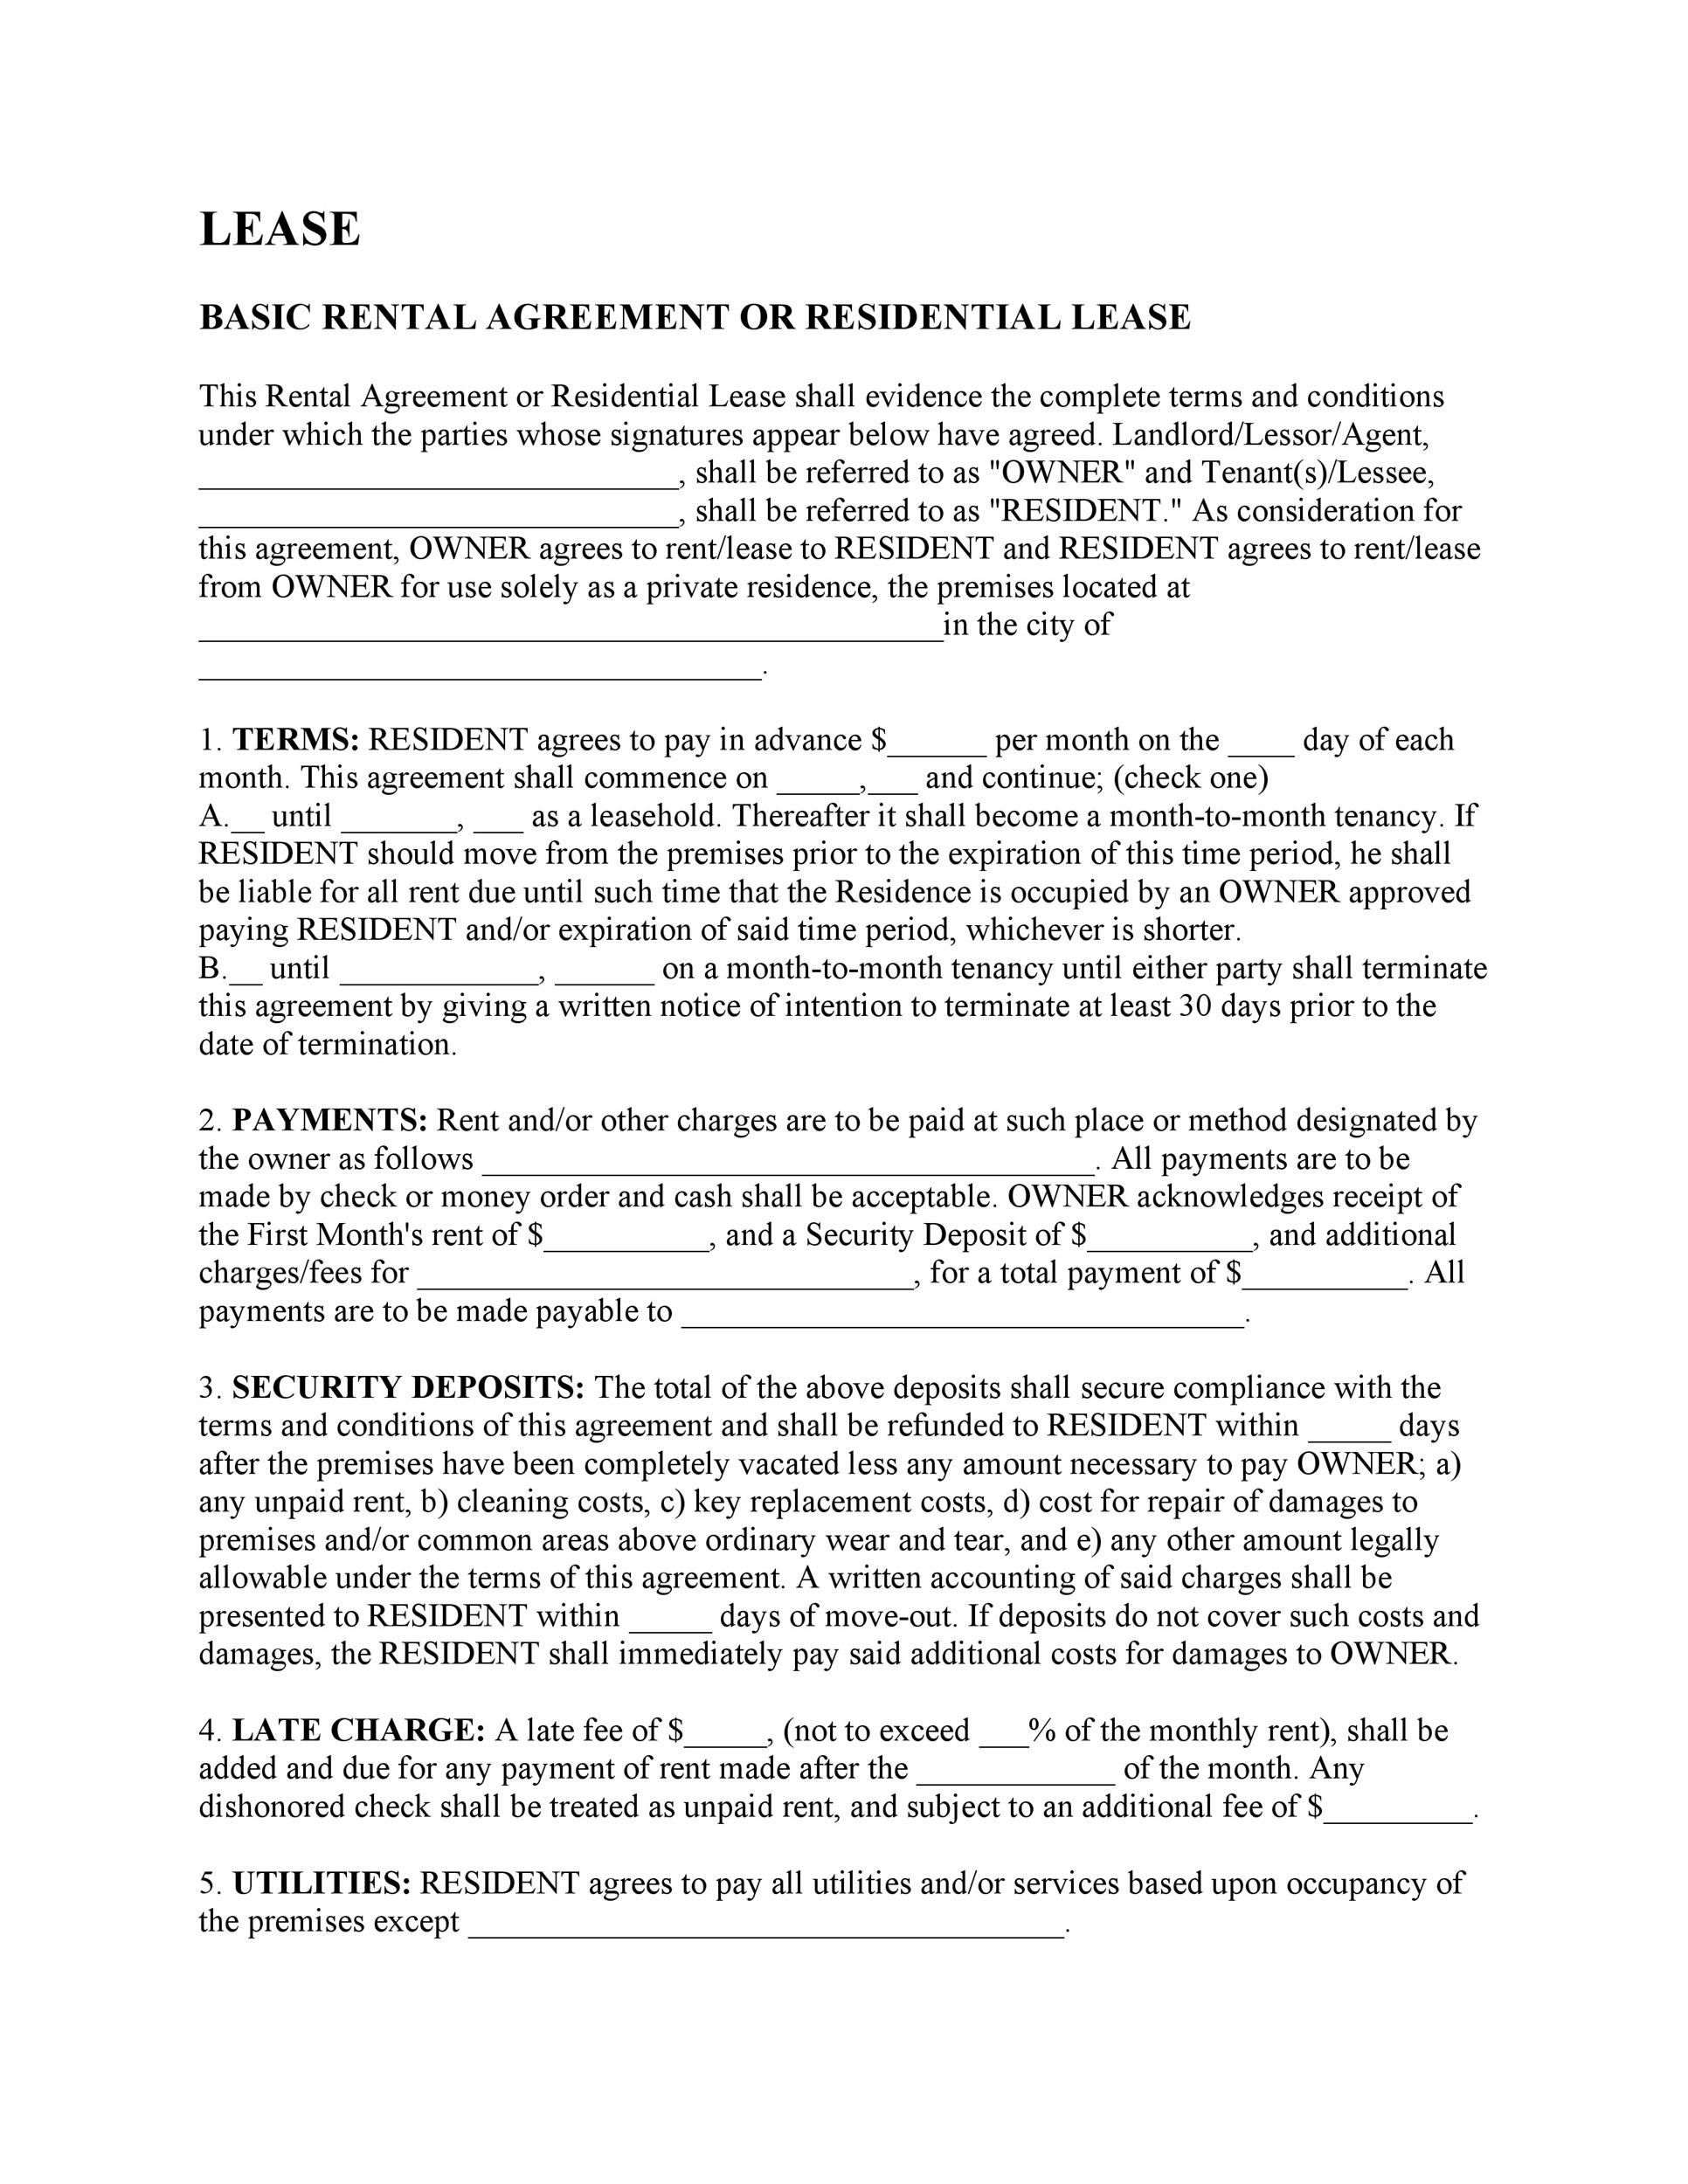 42 Rental Application Forms Lease Agreement Templates – Free Simple Rental Agreement